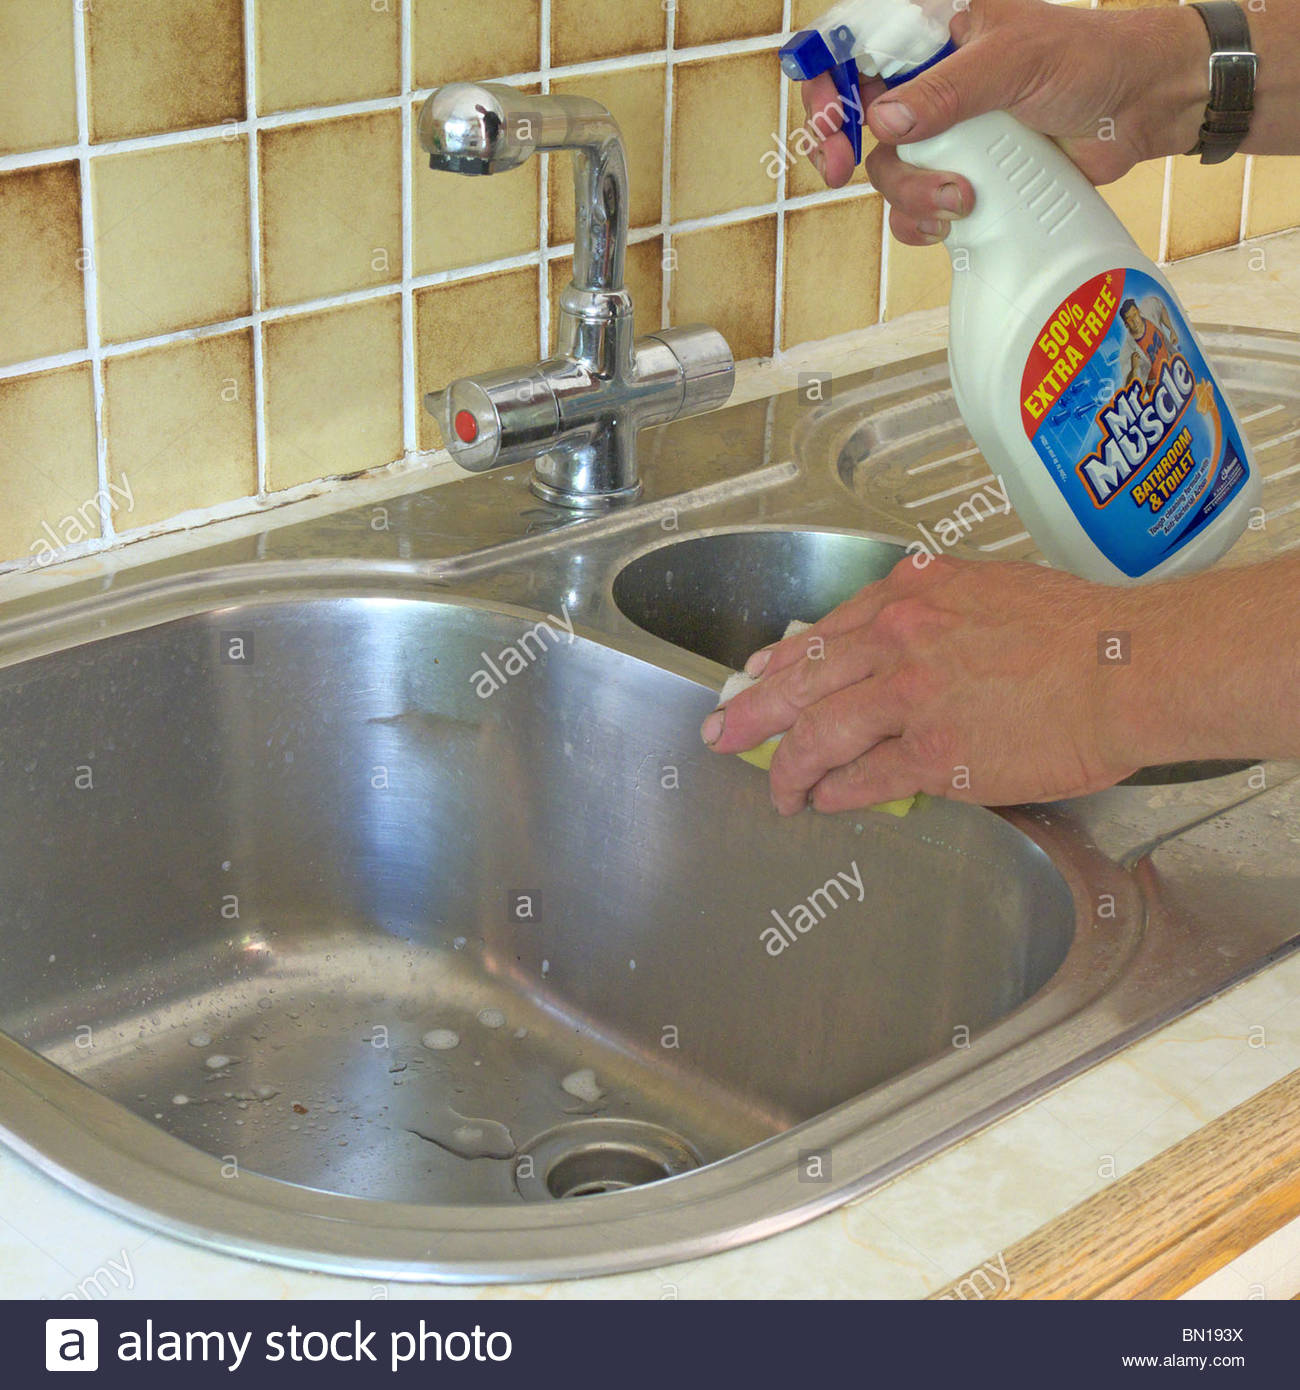 Man Cleaning Stainless Steel Kitchen Sink MODEL RELEASED Stock Photo ...